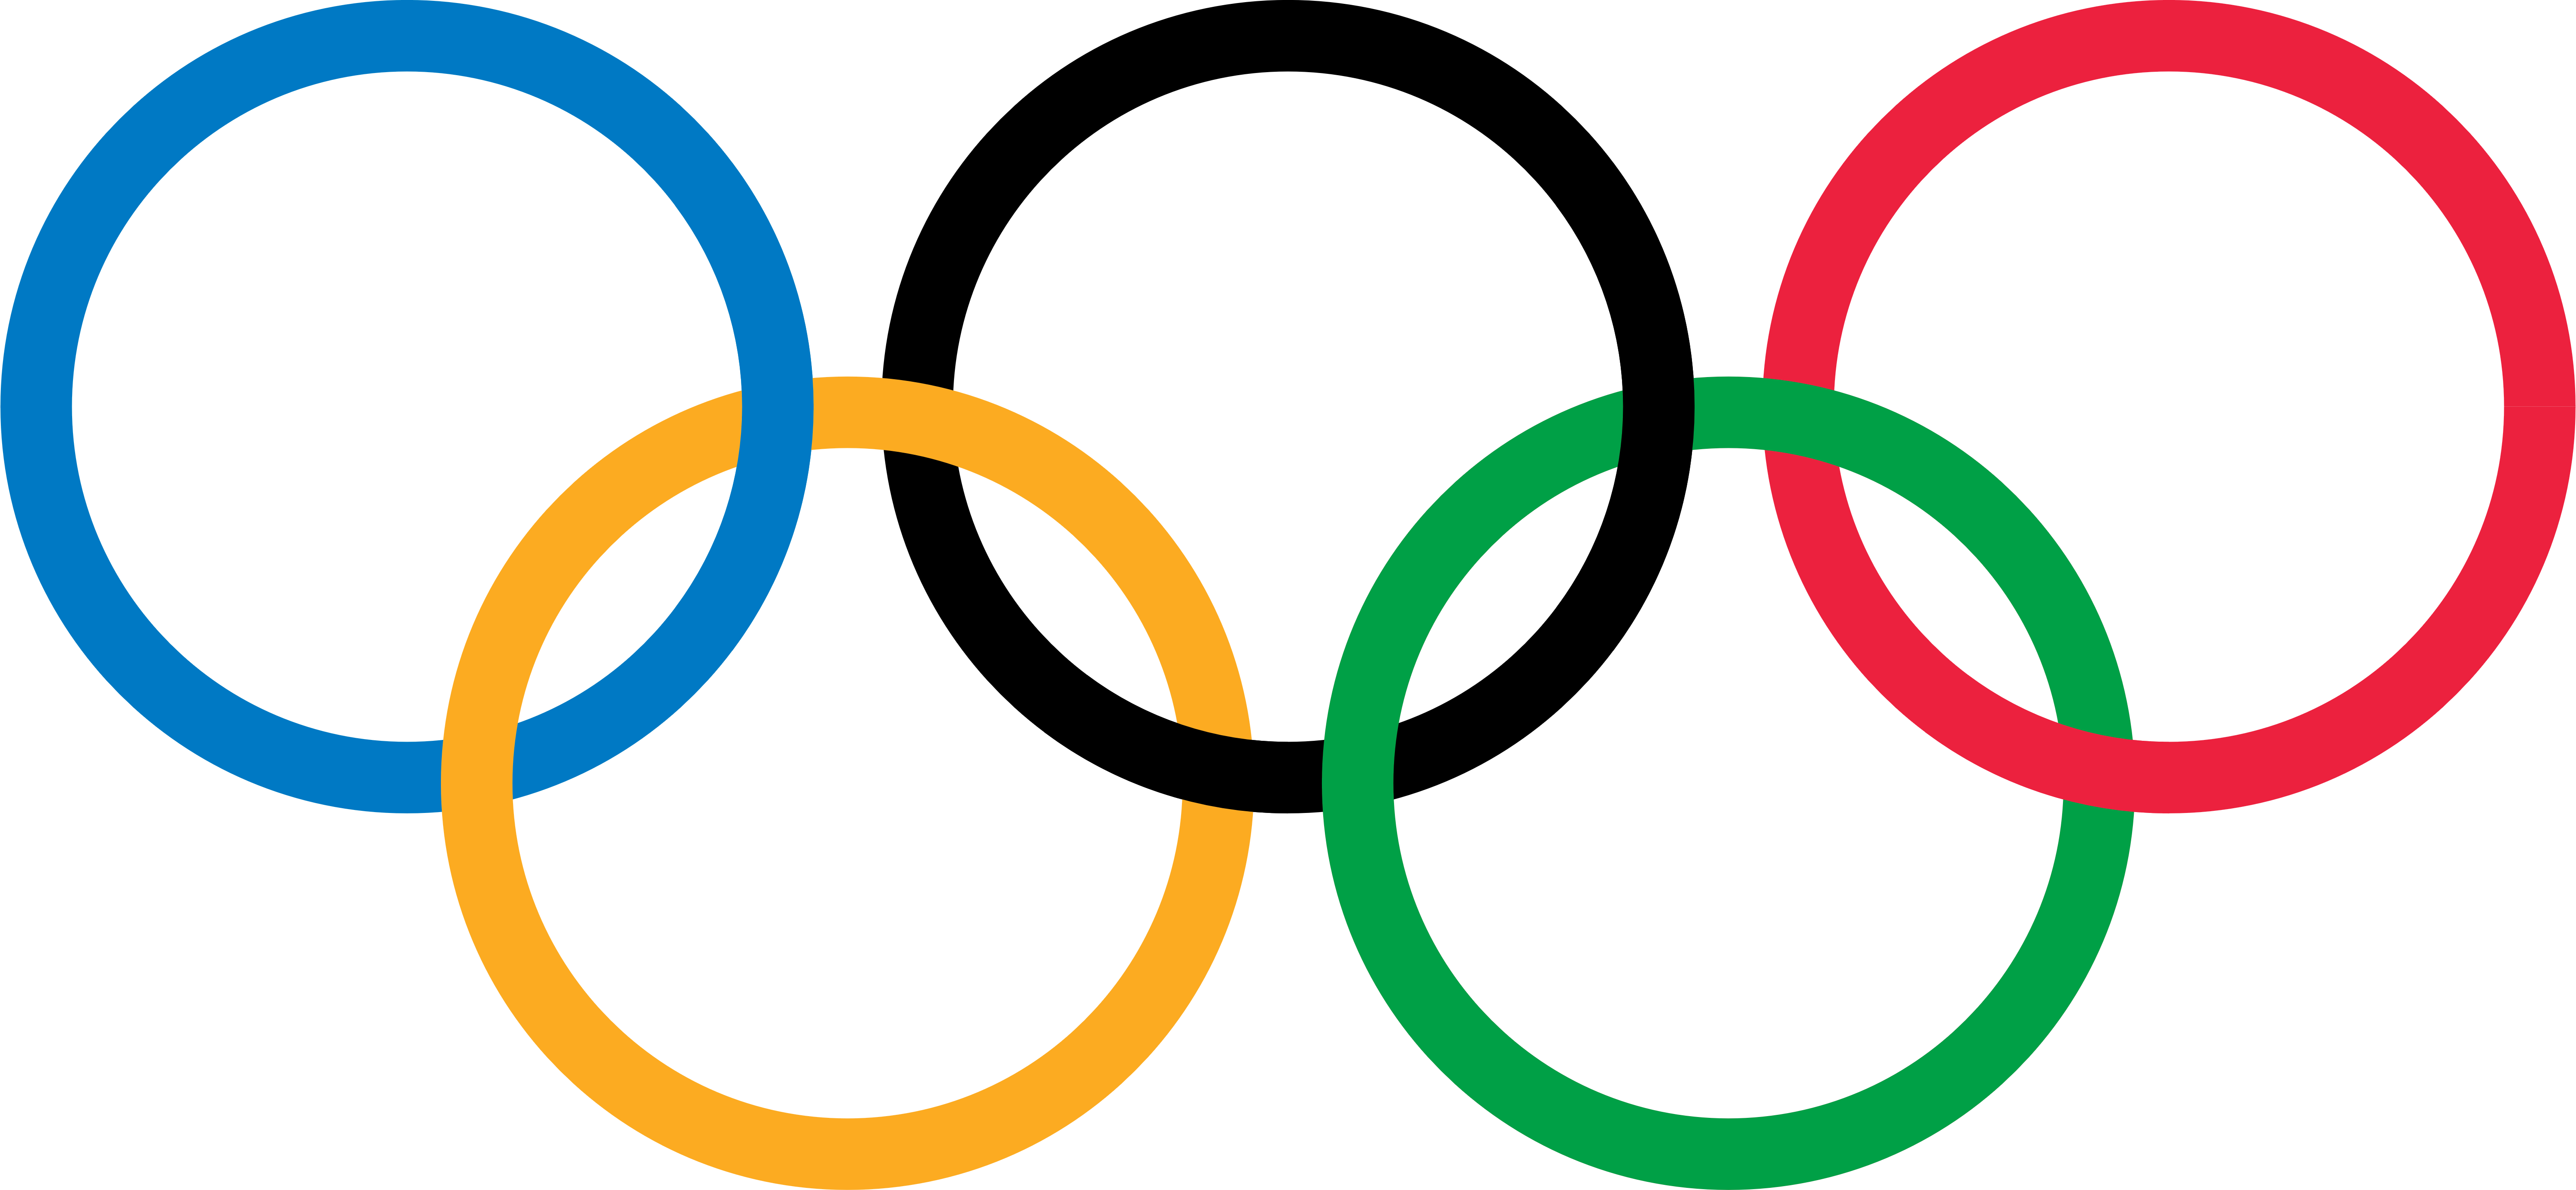 Olympic Symbols PNG Image